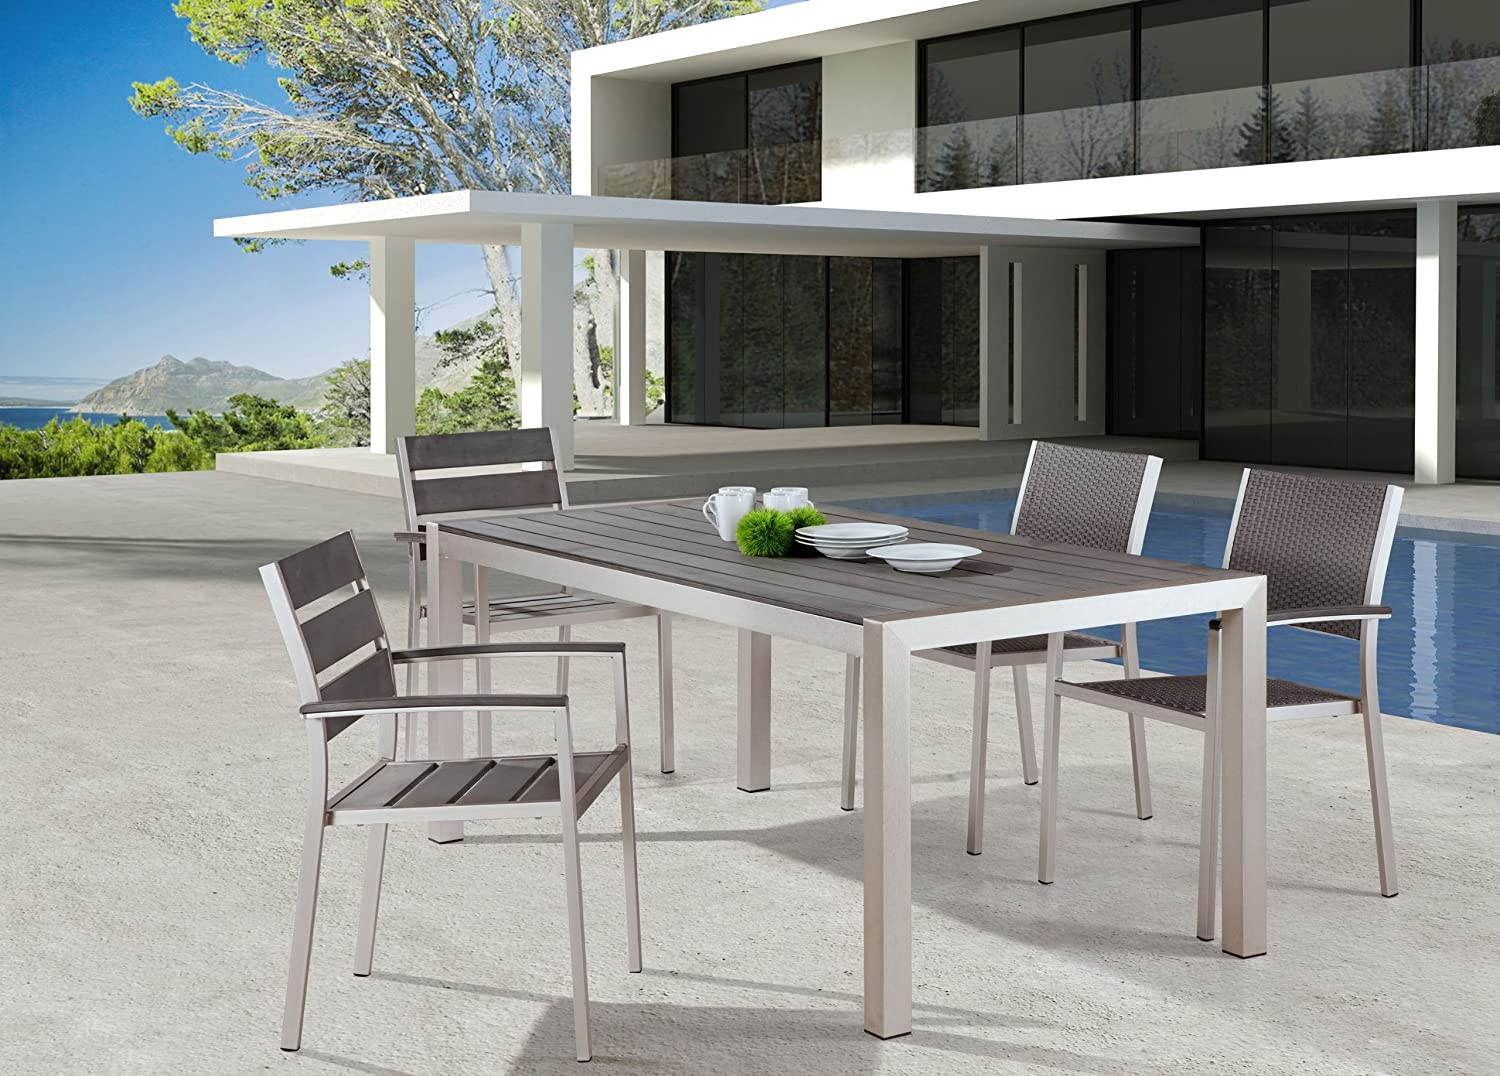 Amazon.com : Zuo Outdoor Metropolitan Dining Table, Brushed Aluminum ...